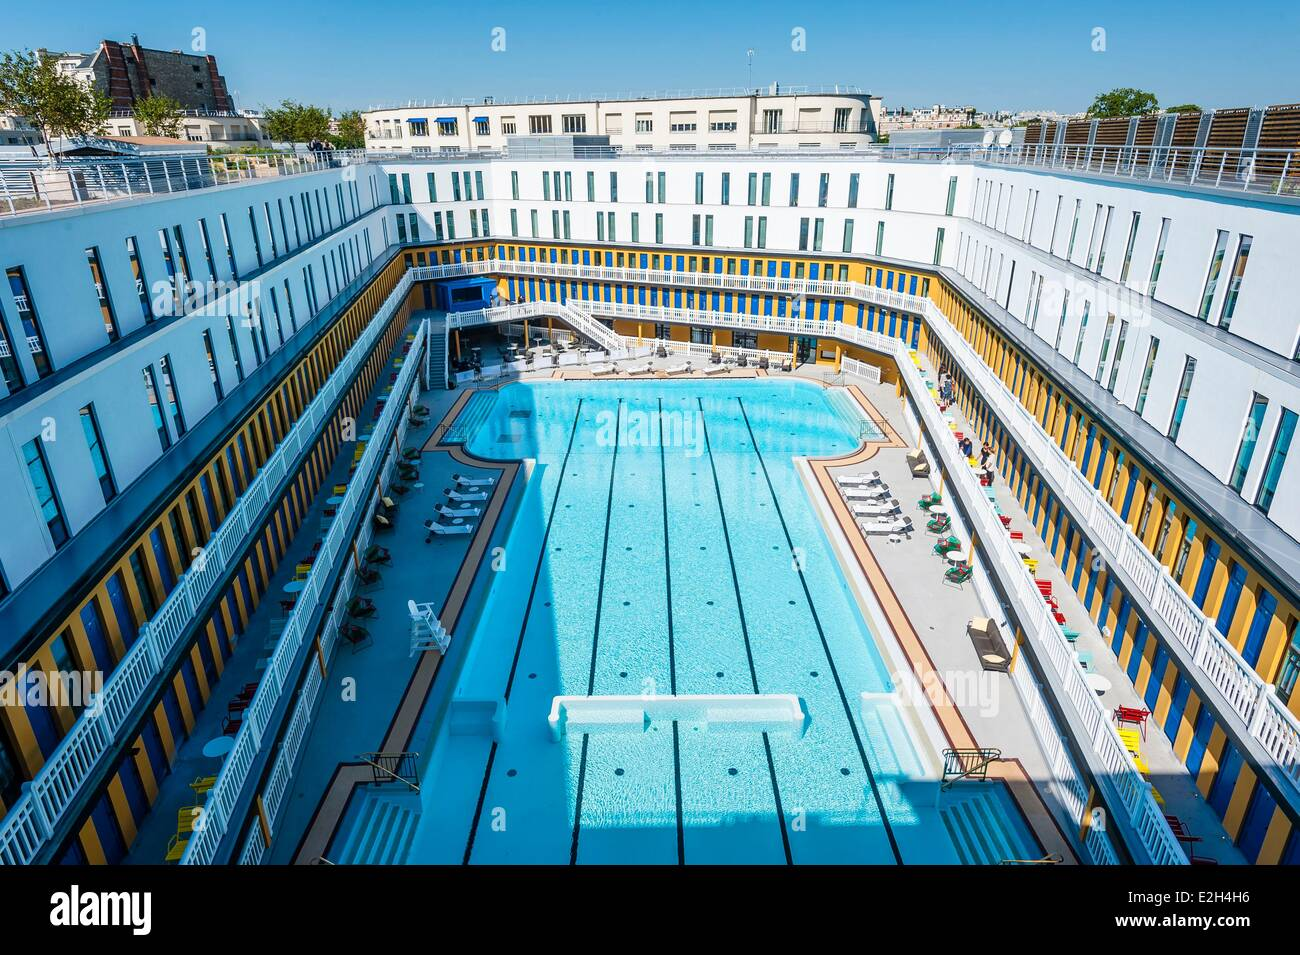 France paris hotel molitor swimming pool opening in may for Molitor paris